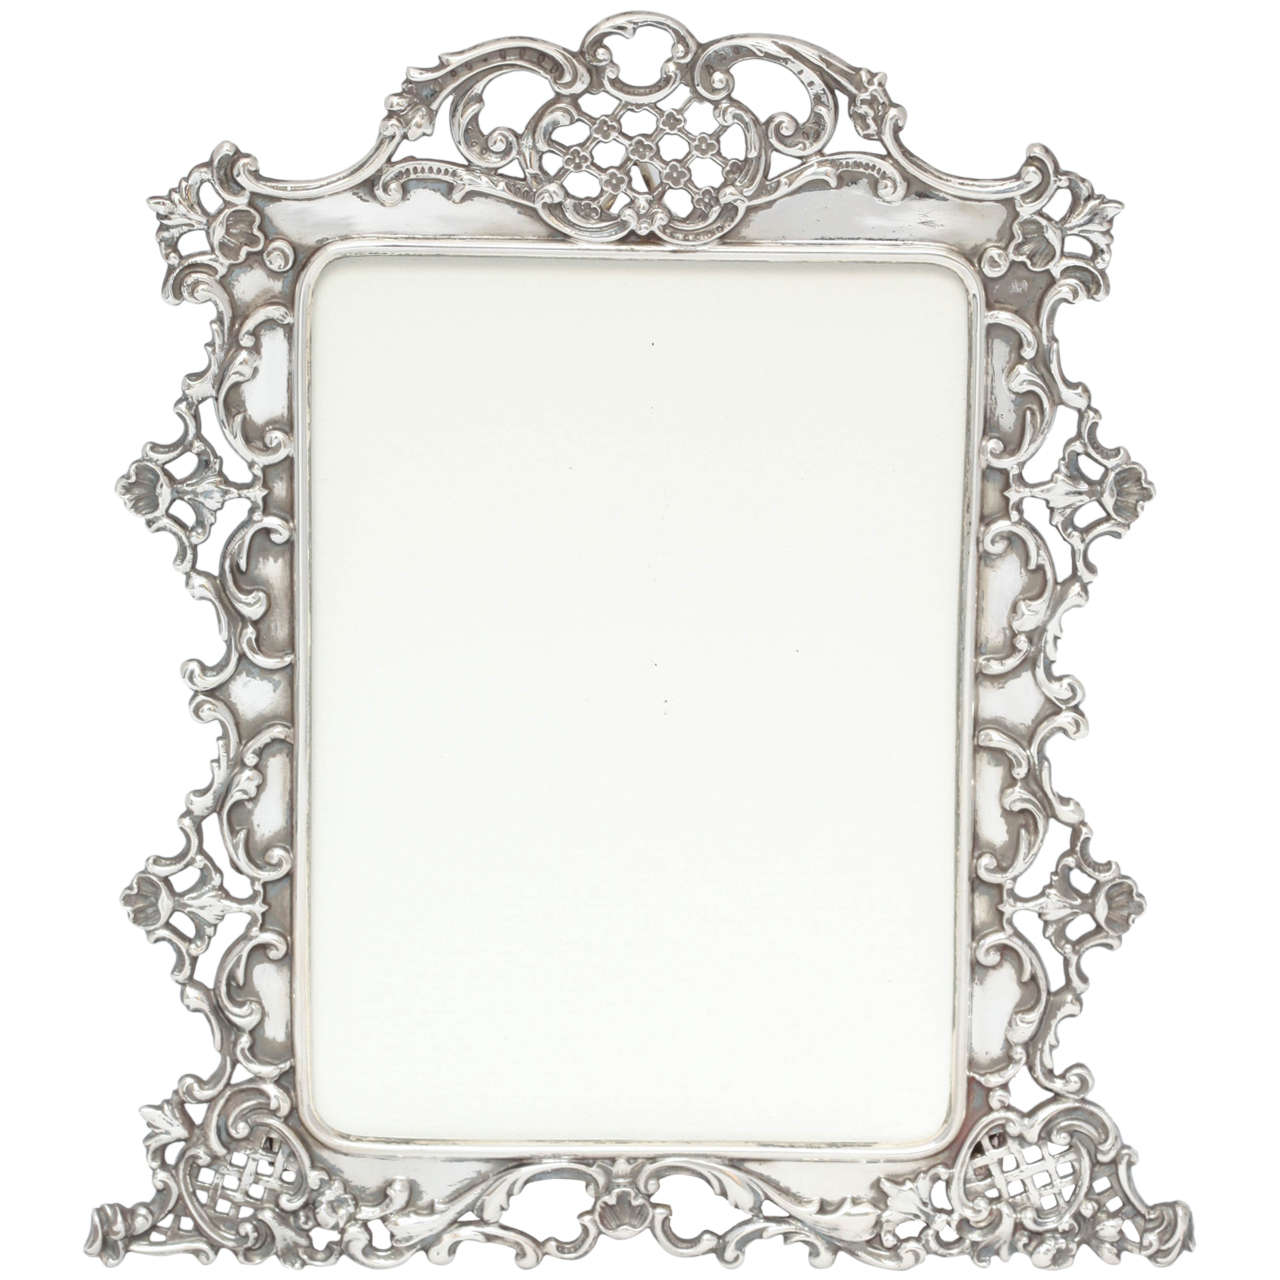 beautiful all sterling silver picture frame 1